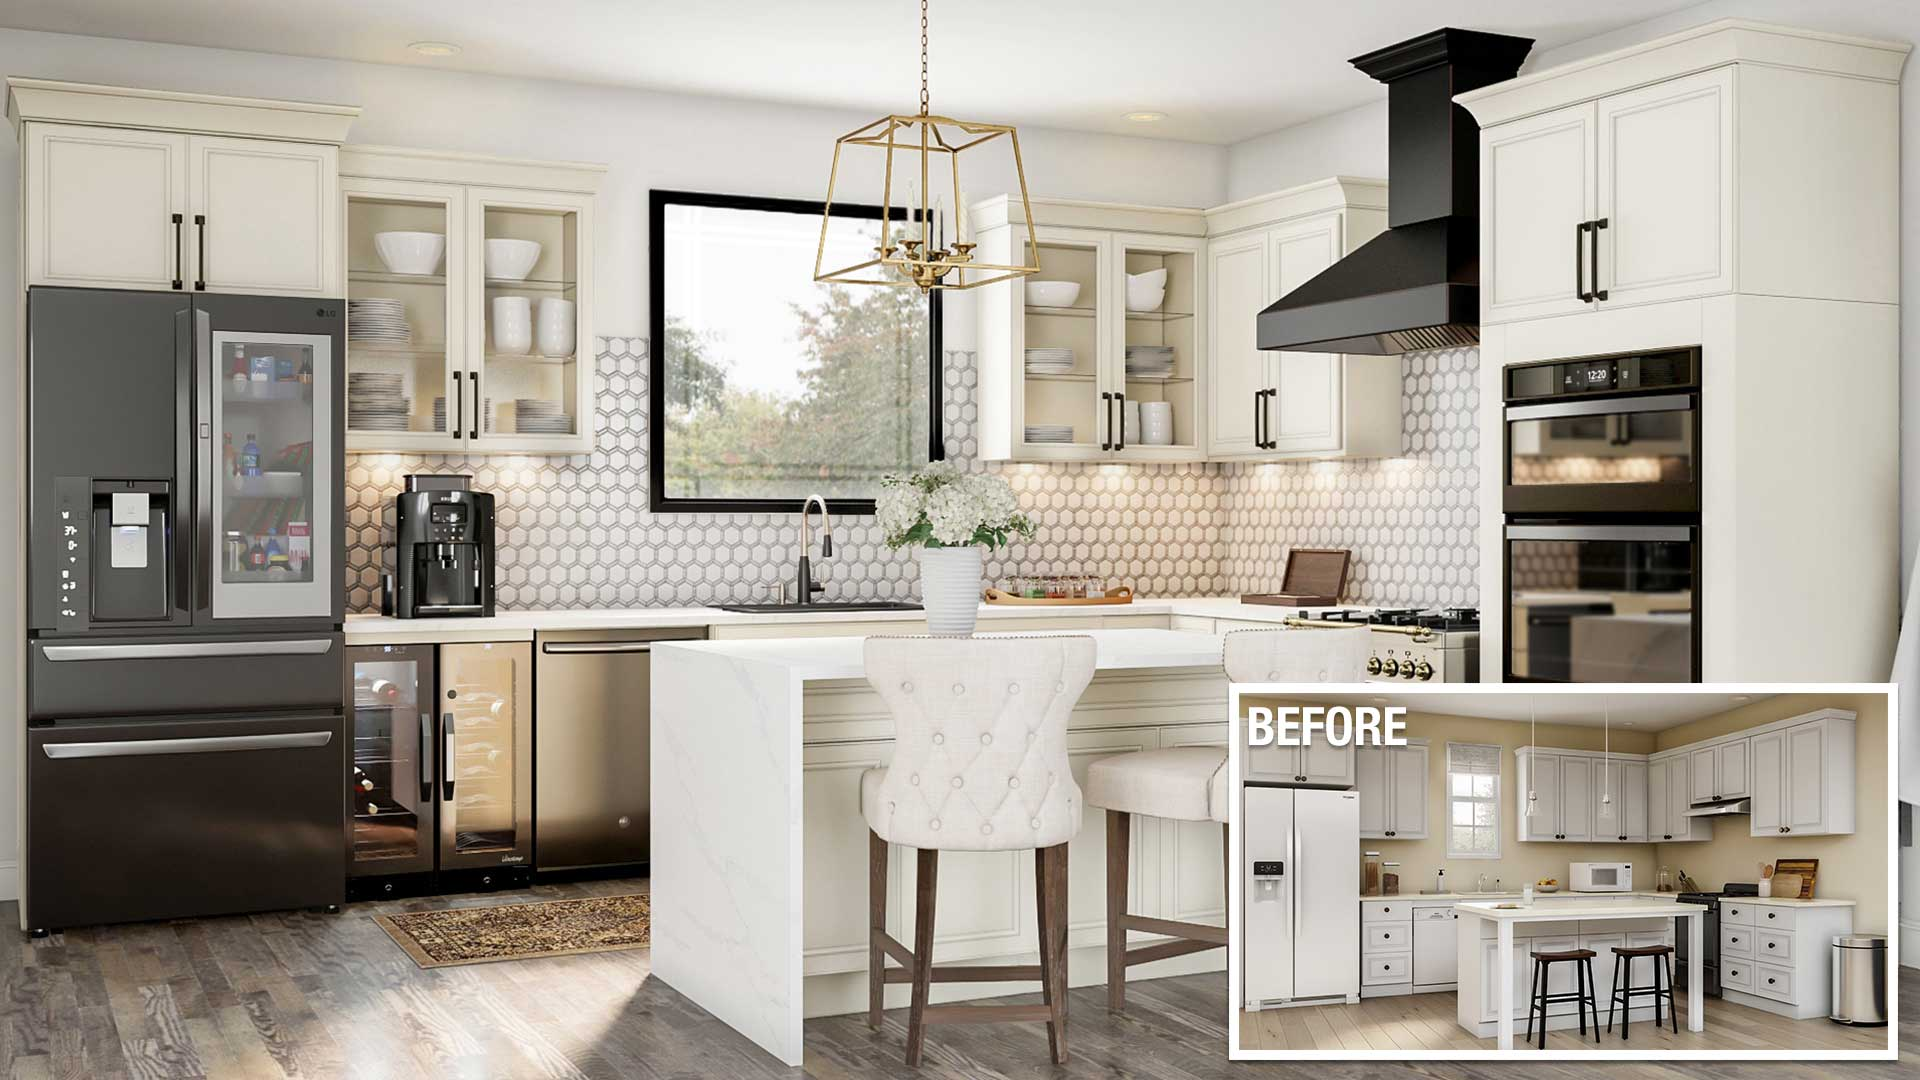 redesign living room on a budget 2018 kitchen remodel costs a before and after of an upscale kitchen remodel